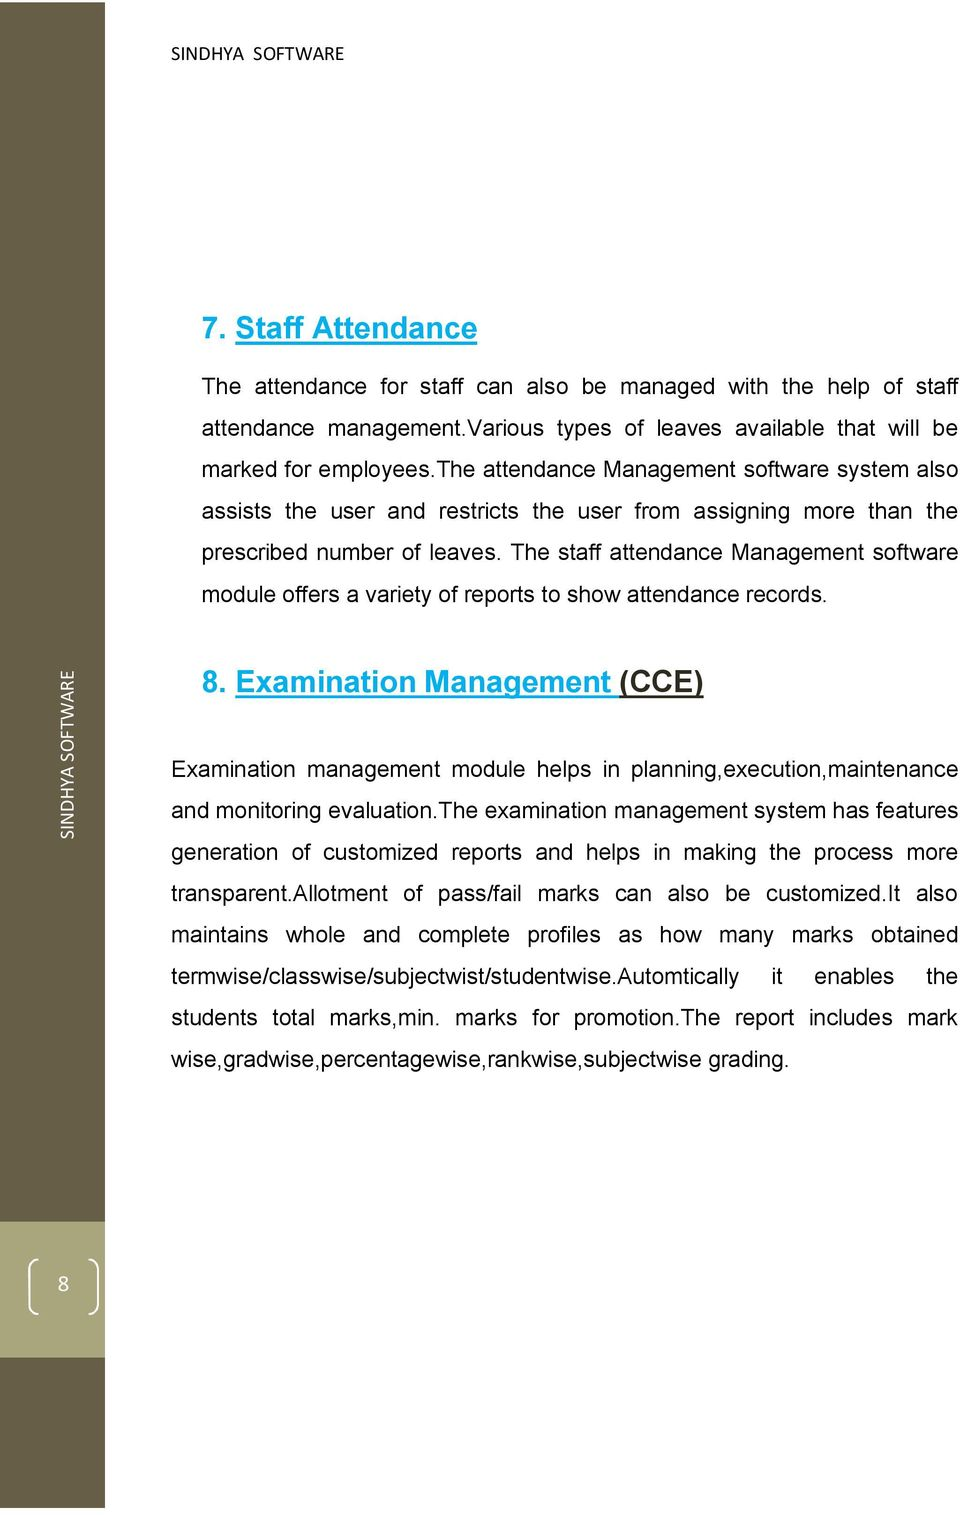 The staff attendance Management software module offers a variety of reports to show attendance records. 8.